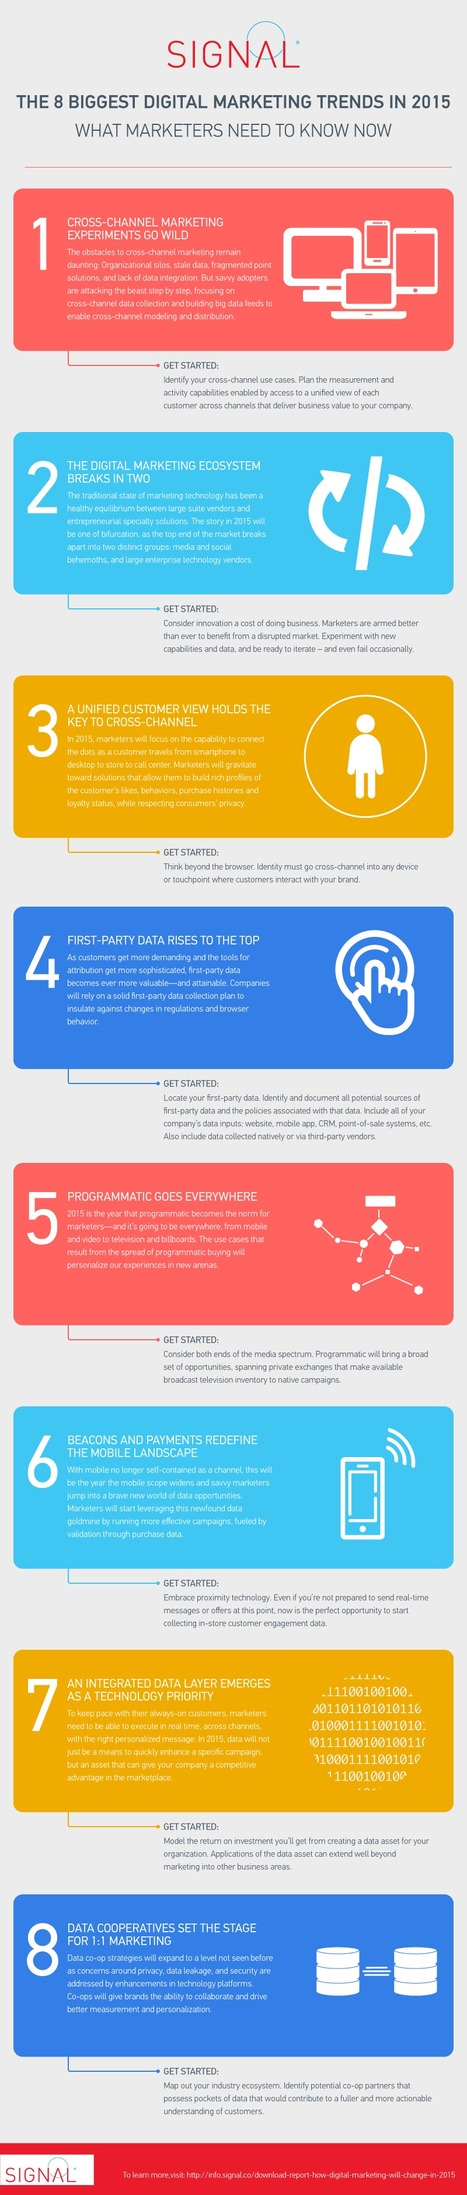 8 Advanced Trends In Social And Digital Marketing (Infographic) | Designing  services | Scoop.it